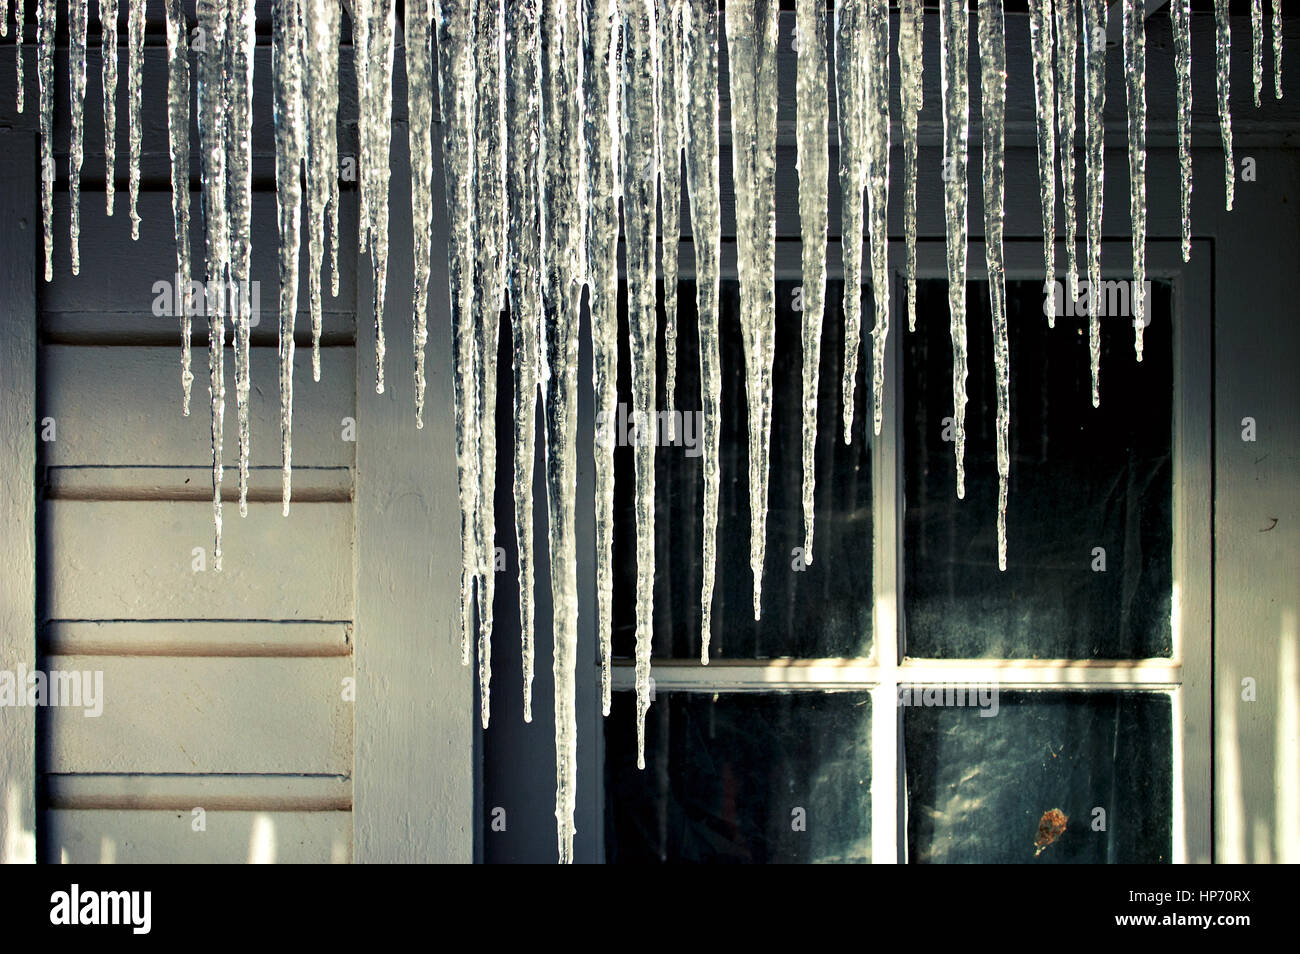 Icicles hanging from a house gutter in the winter. Stock Photo